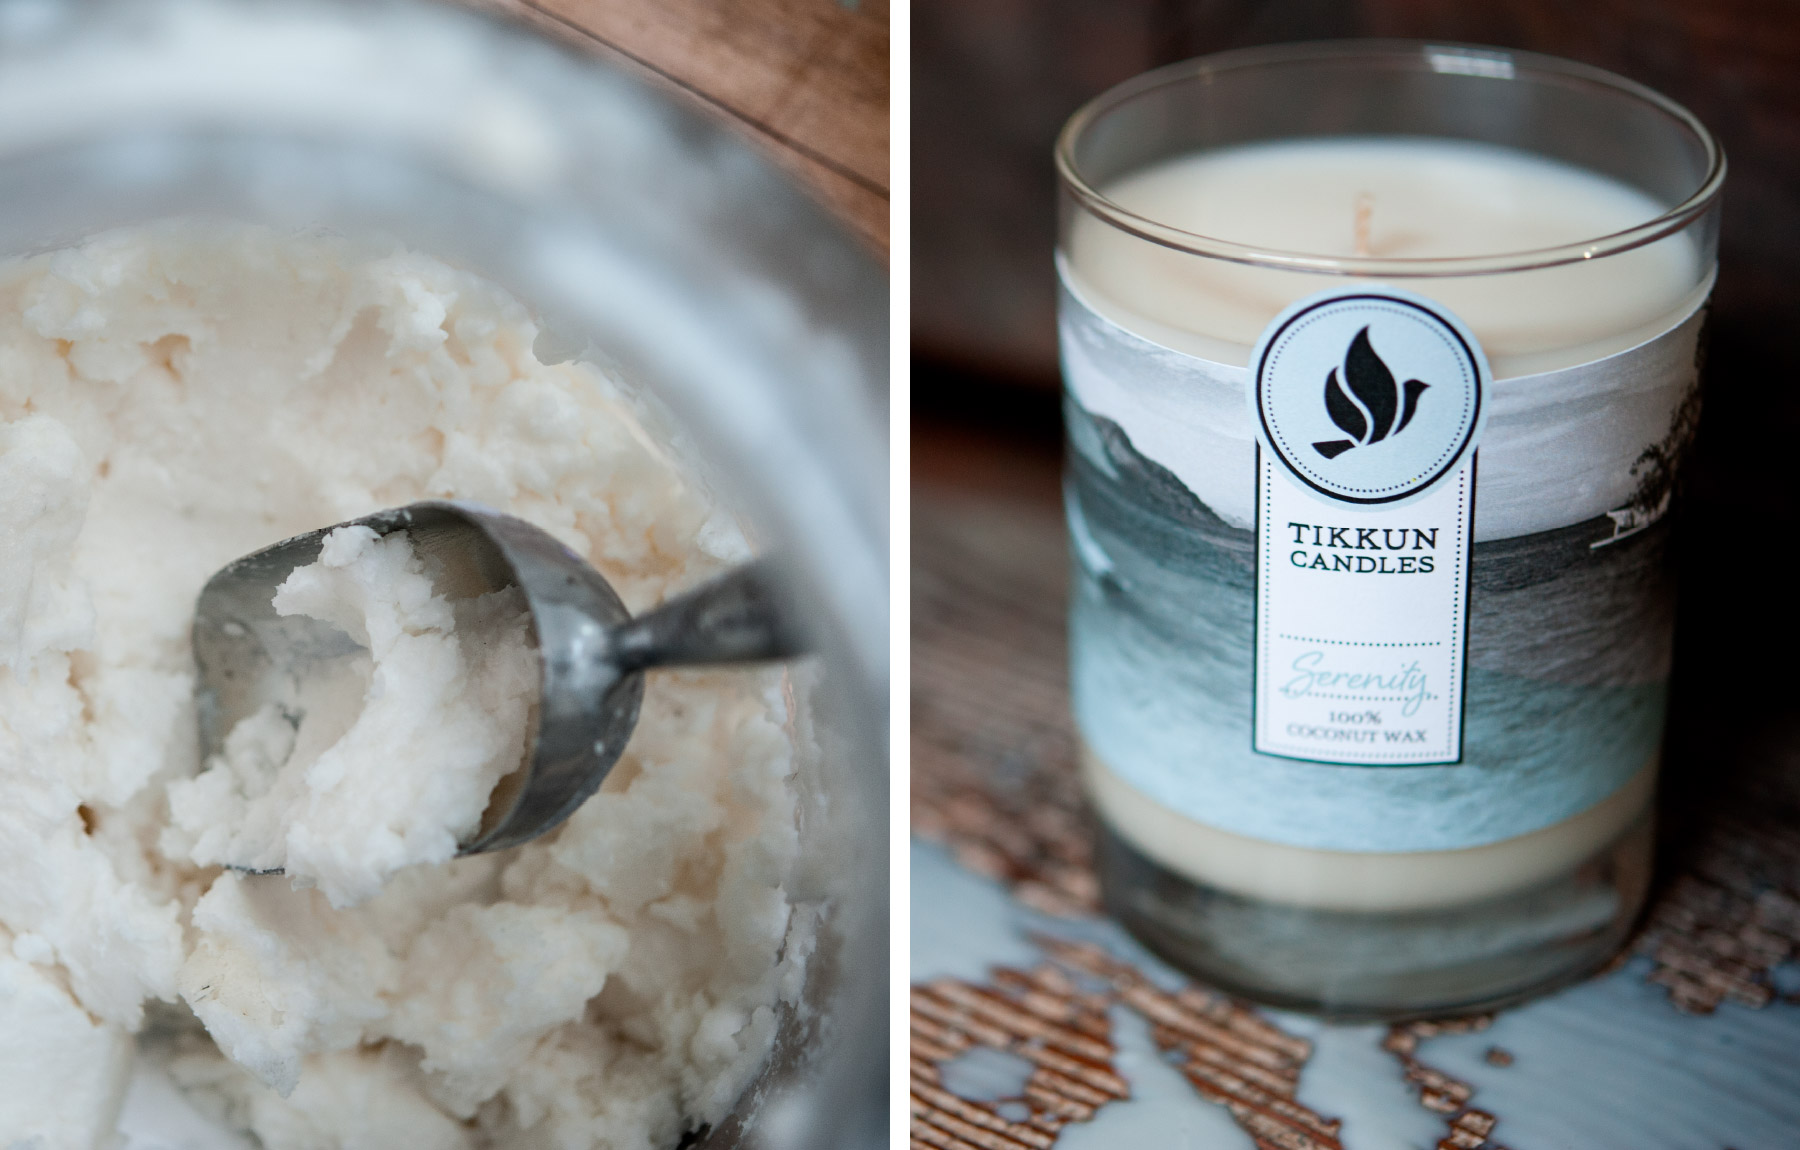 Coconut wax with serenity candle